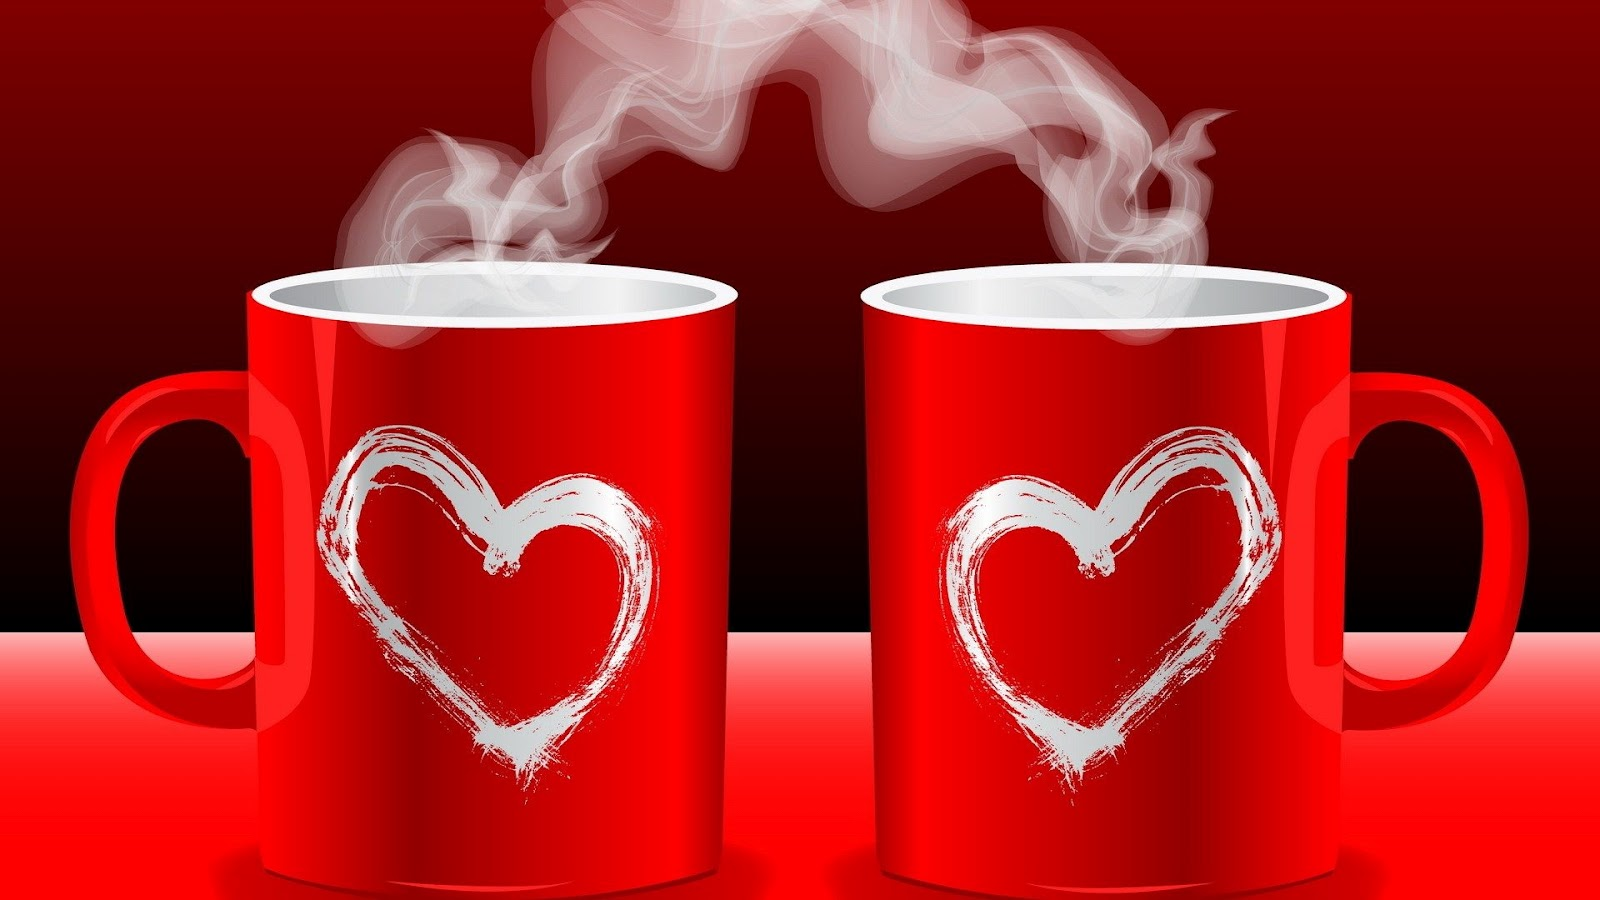 Love Wallpaper Good Morning : good morning greeting cards hd wallpapers free download ...